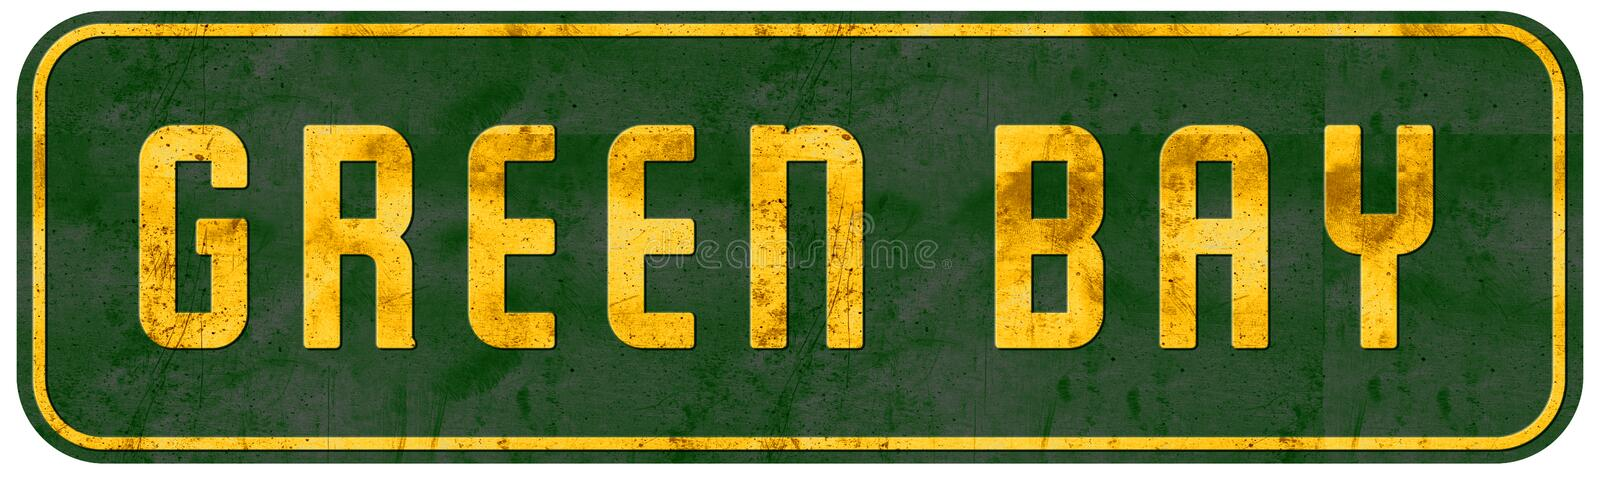 Green Bay Wisconsin Street Sign Yellow and Green. Packers NFL grunge rustic vintage retro antique metal tin royalty free stock photo